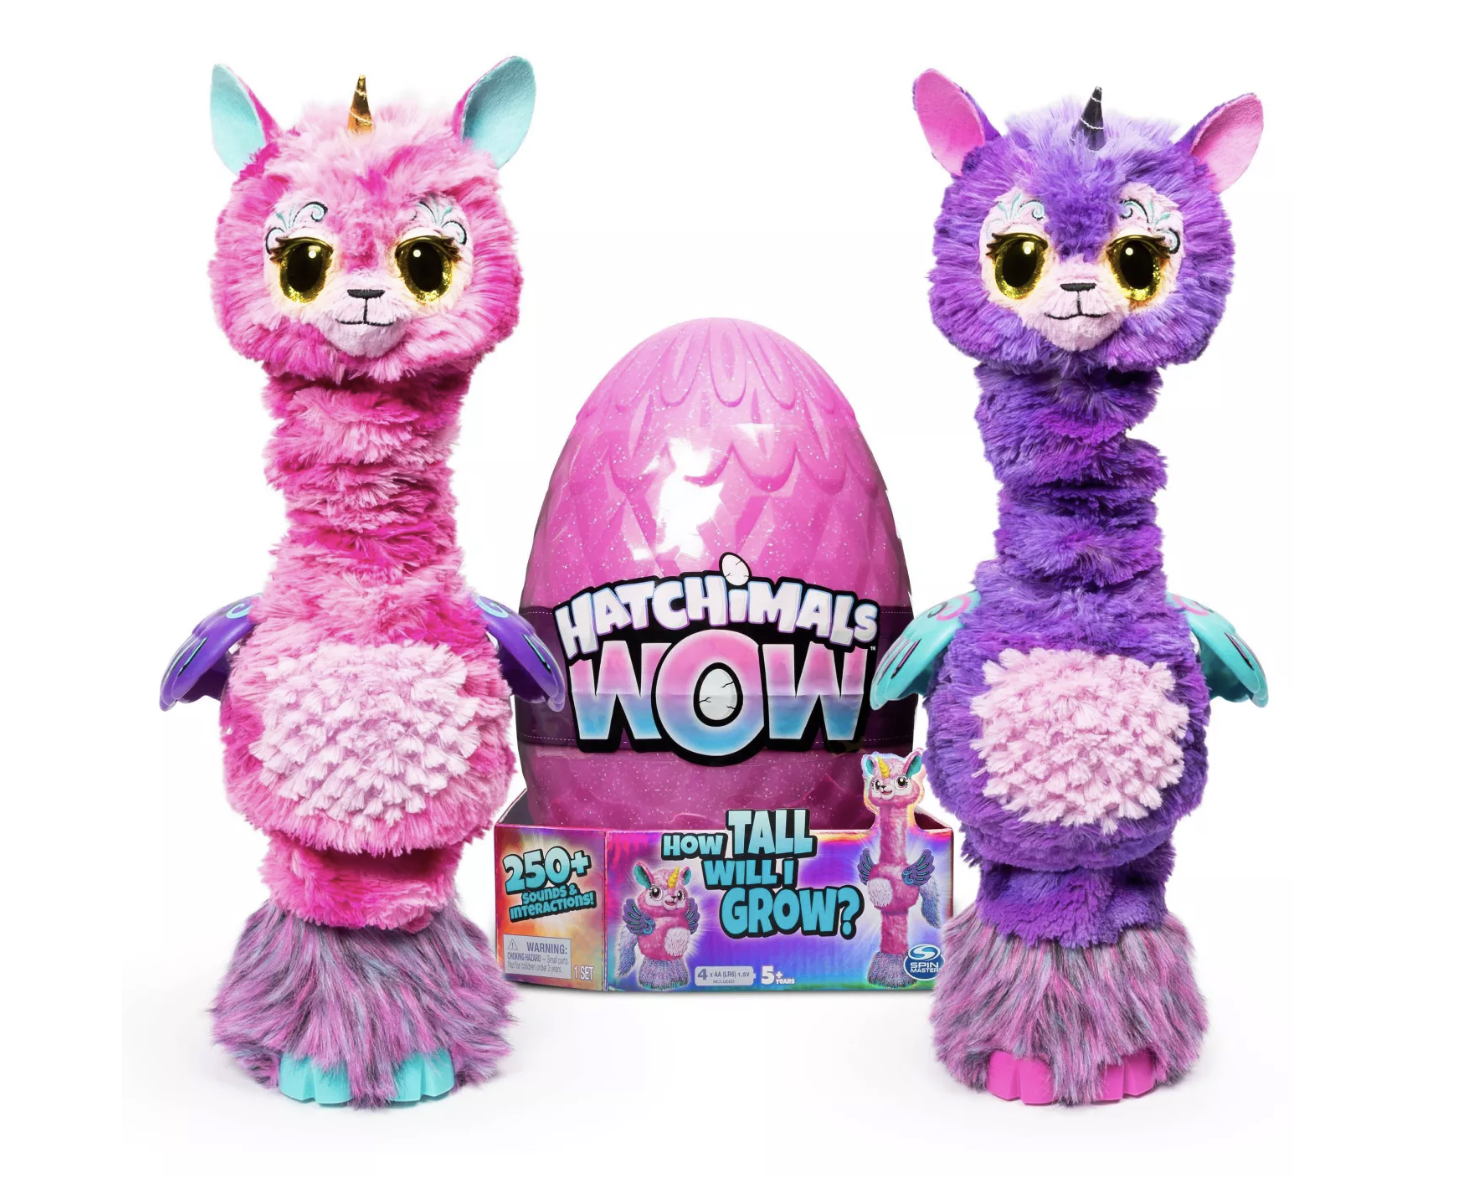 Toy Deals Lol Surprise Hatchimals Legos At Target Amazon Money